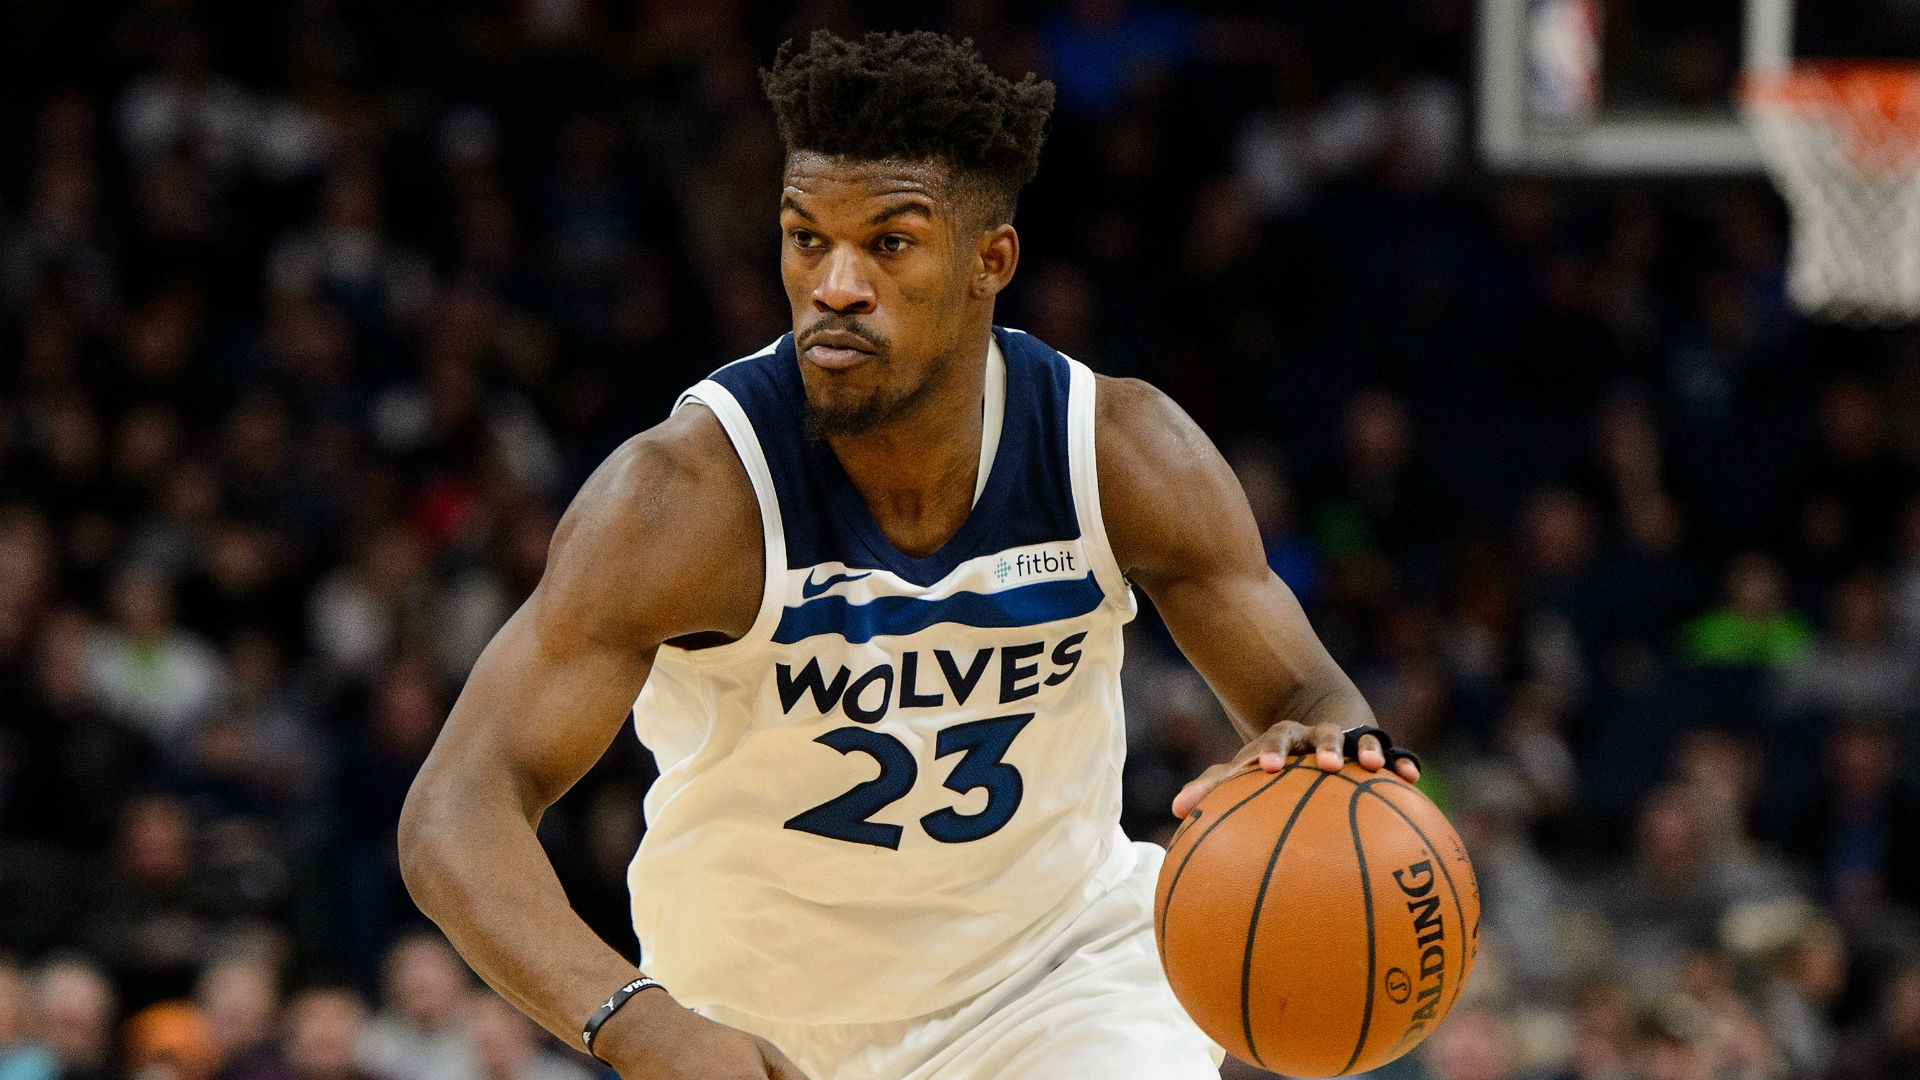 Minnesota's Jimmy Butler doesn't appear in Sunday's All-Star Game